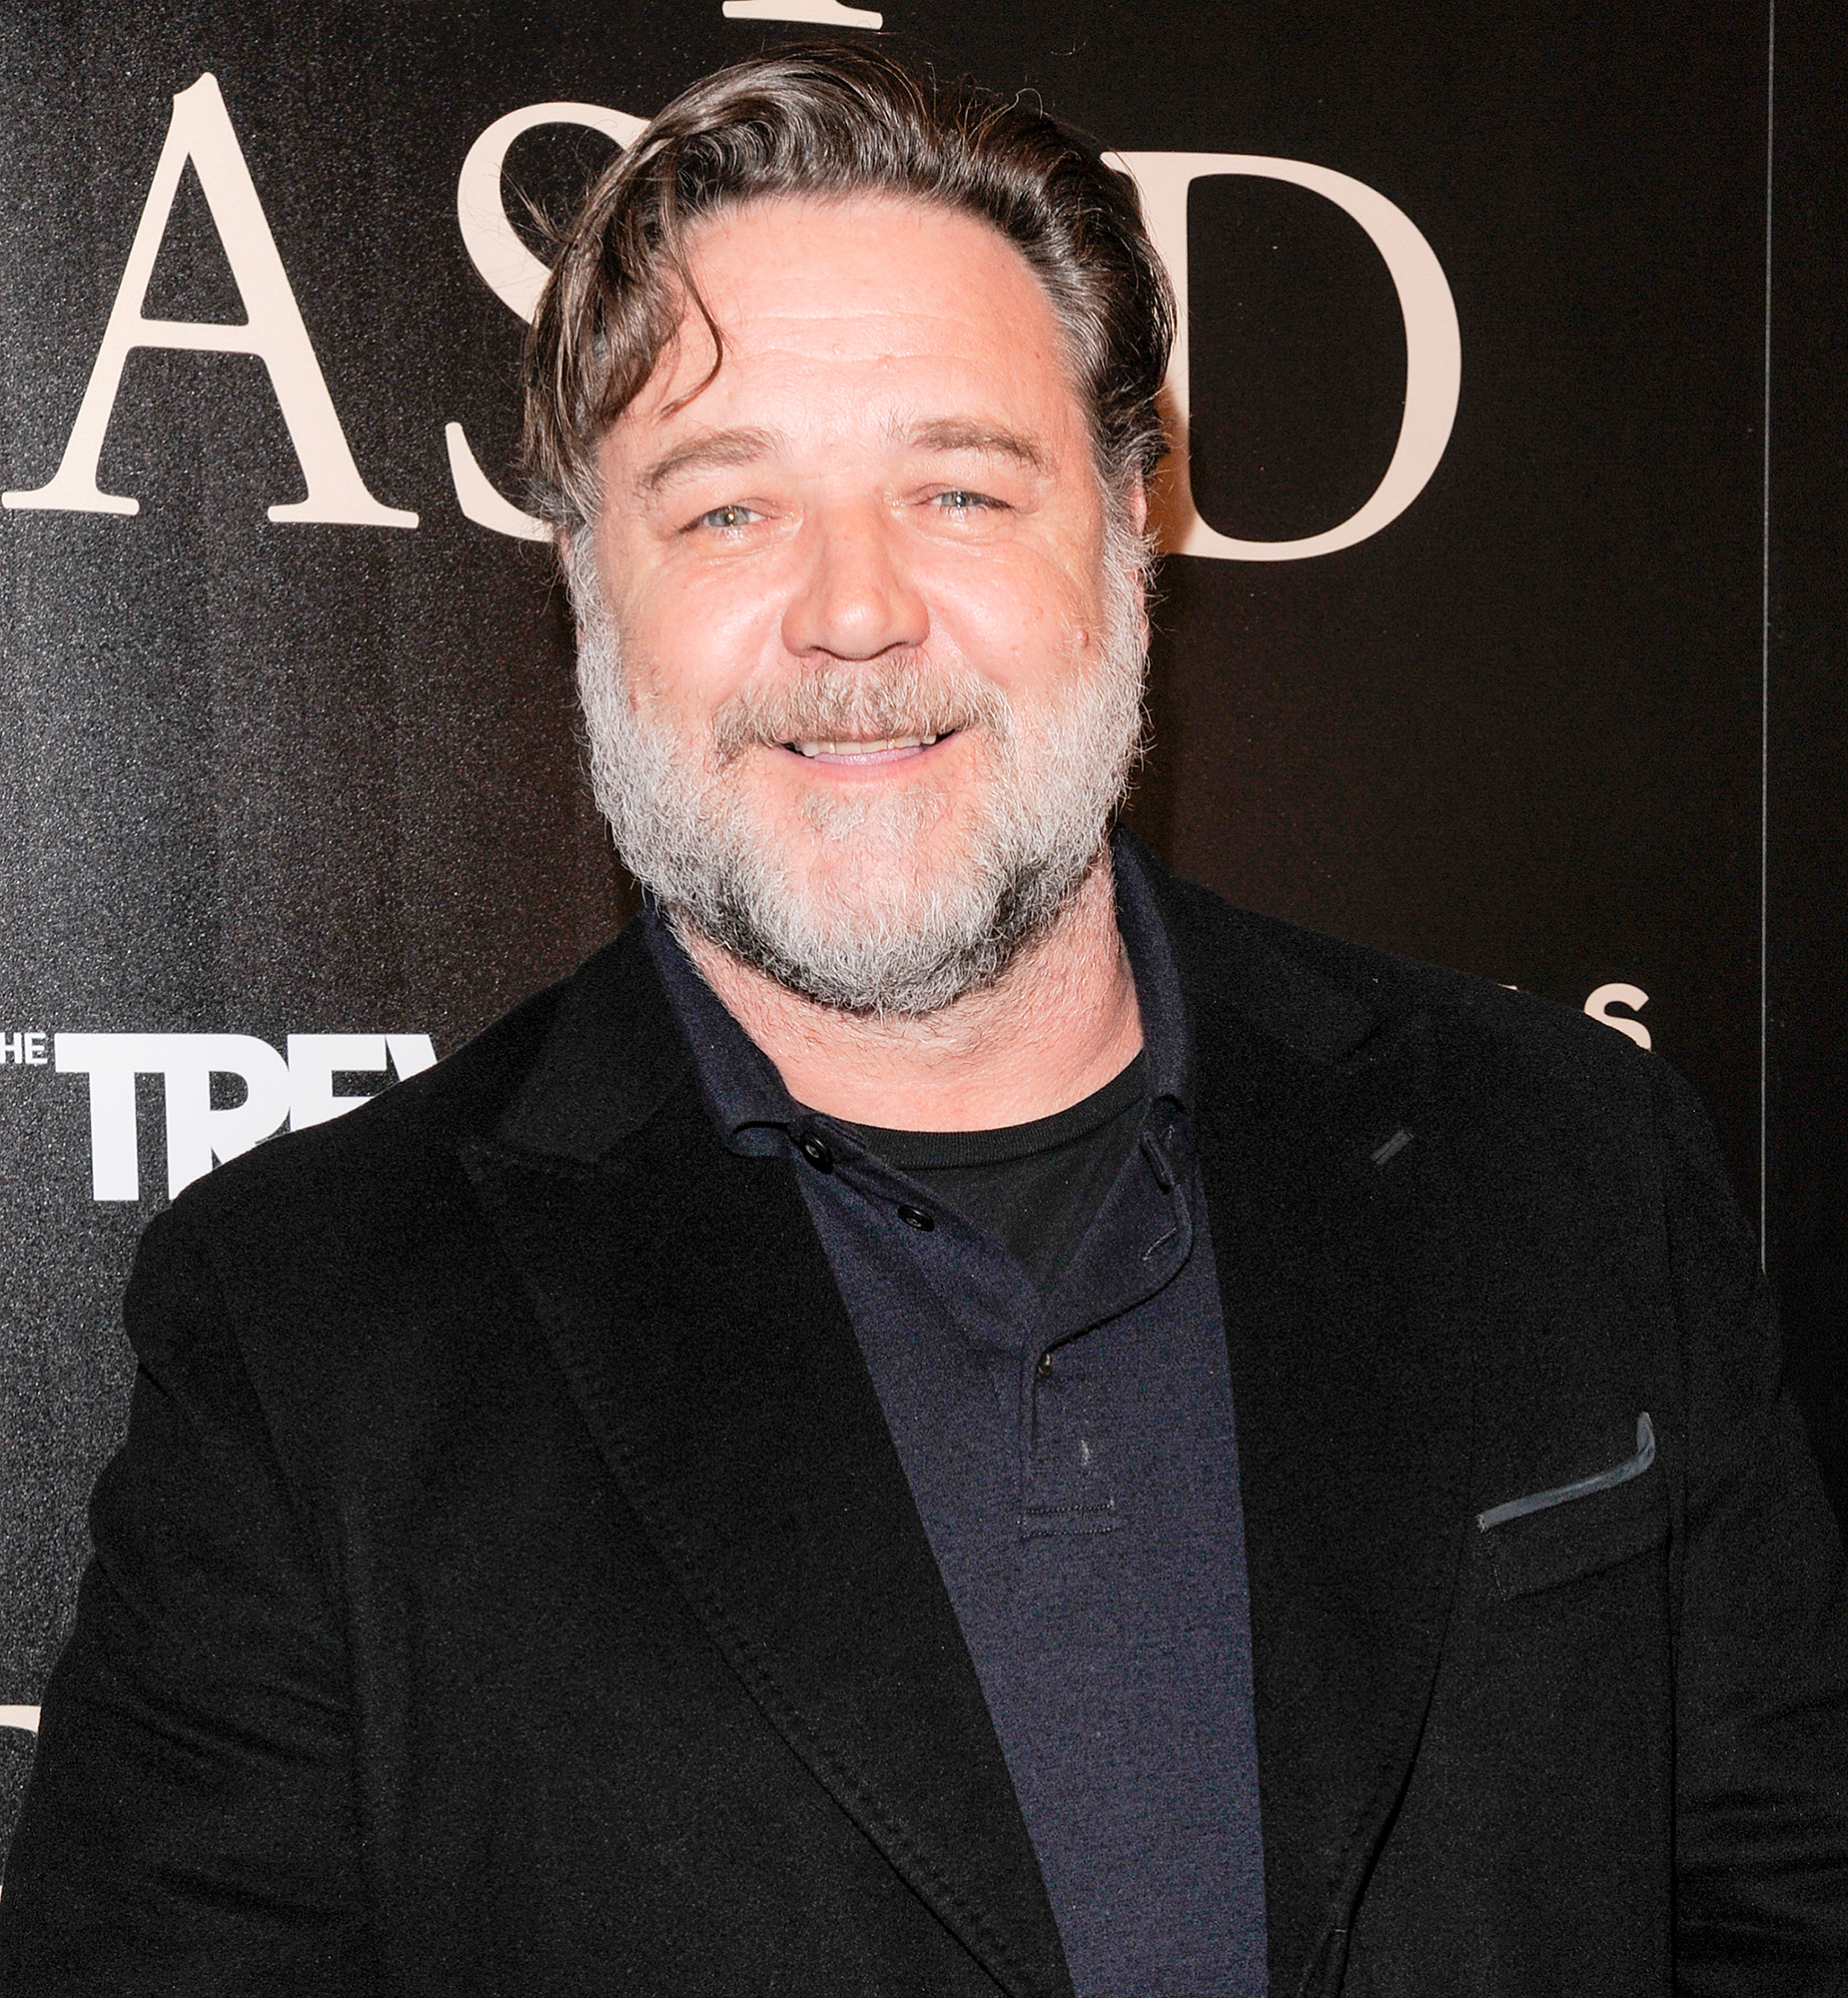 Russell-Crowe-Is-Unrecognizable-as-Roger-Ailes - Russell Crowe attends the New York screening of Boy Erased at the Whitby Hotel Manhattan on October 22, 2018.